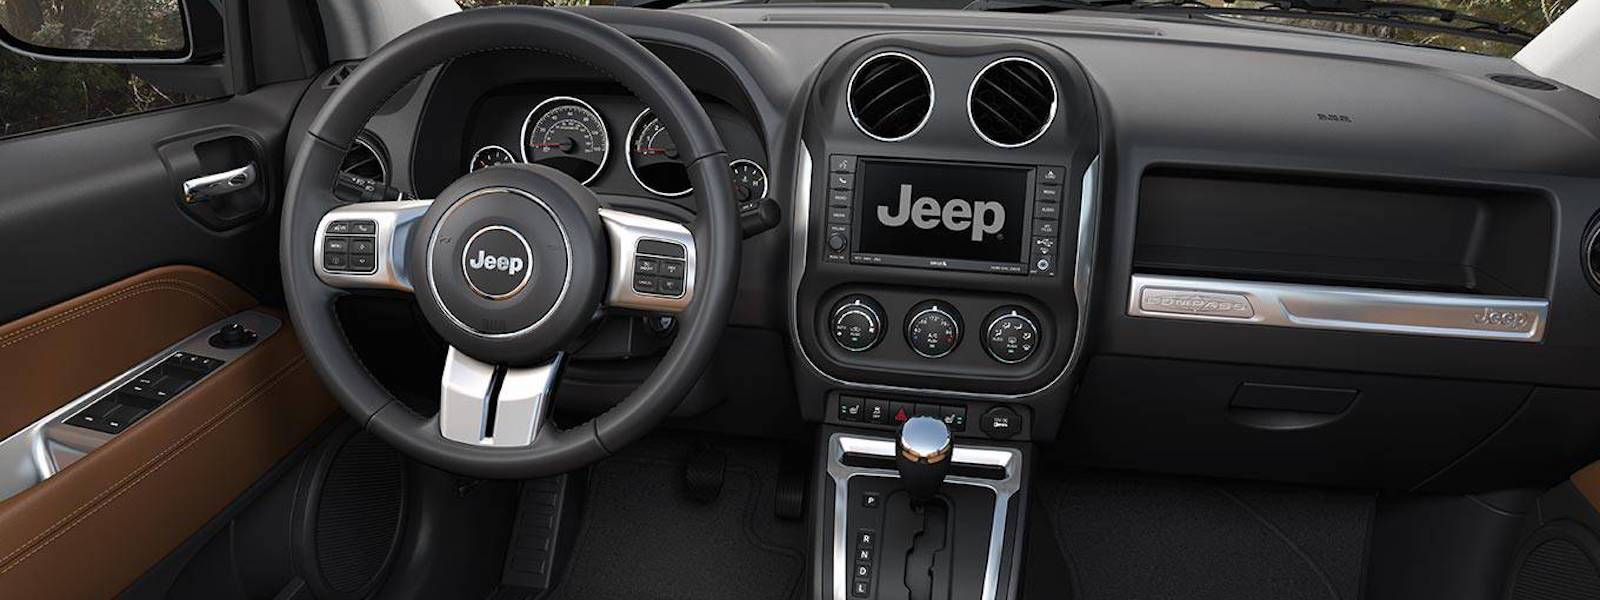 2016 Jeep Compass Interior